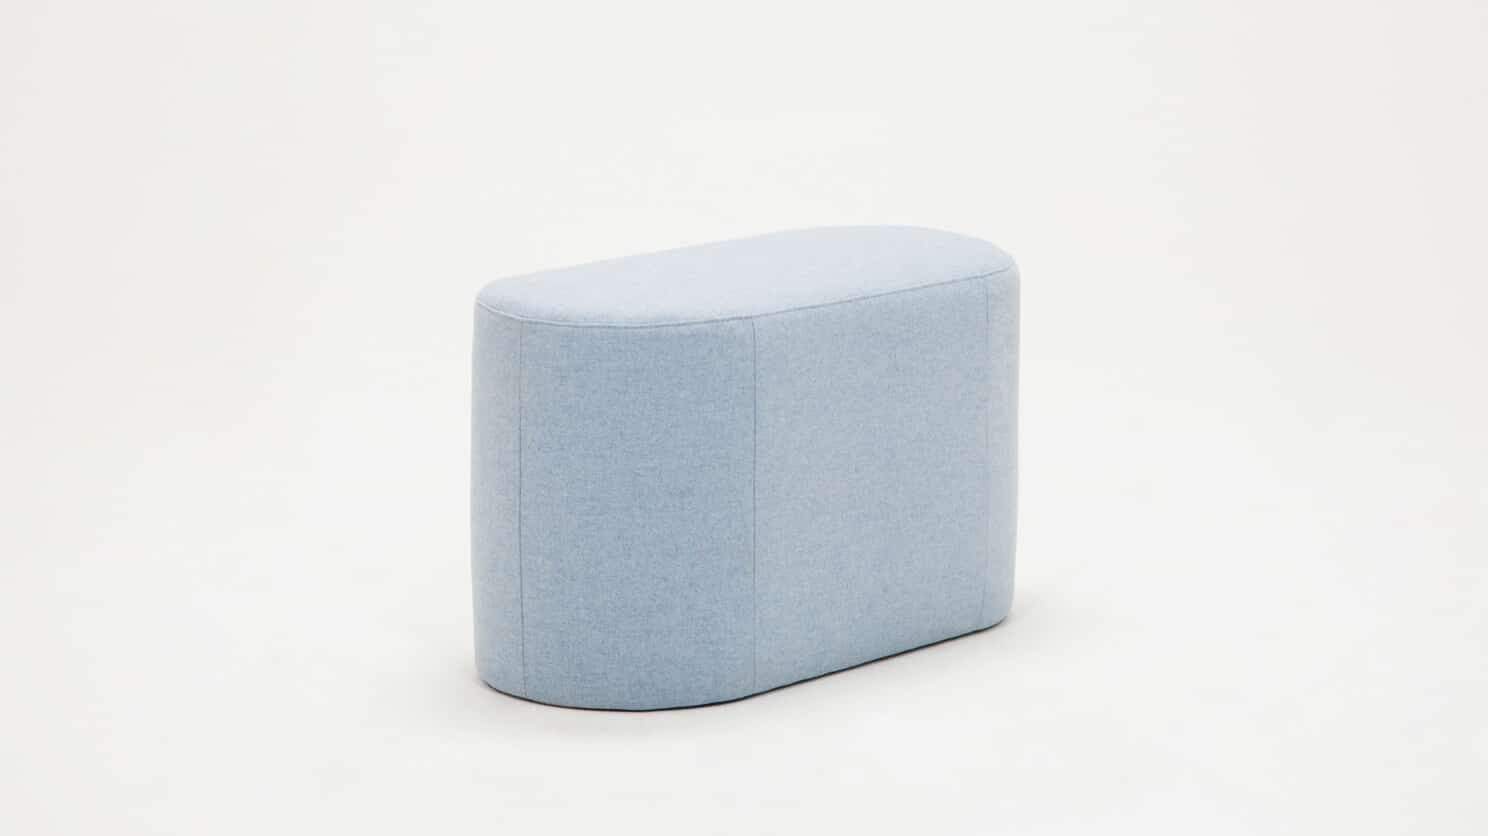 30144 04 01 ottoman oval lana light blue corner view